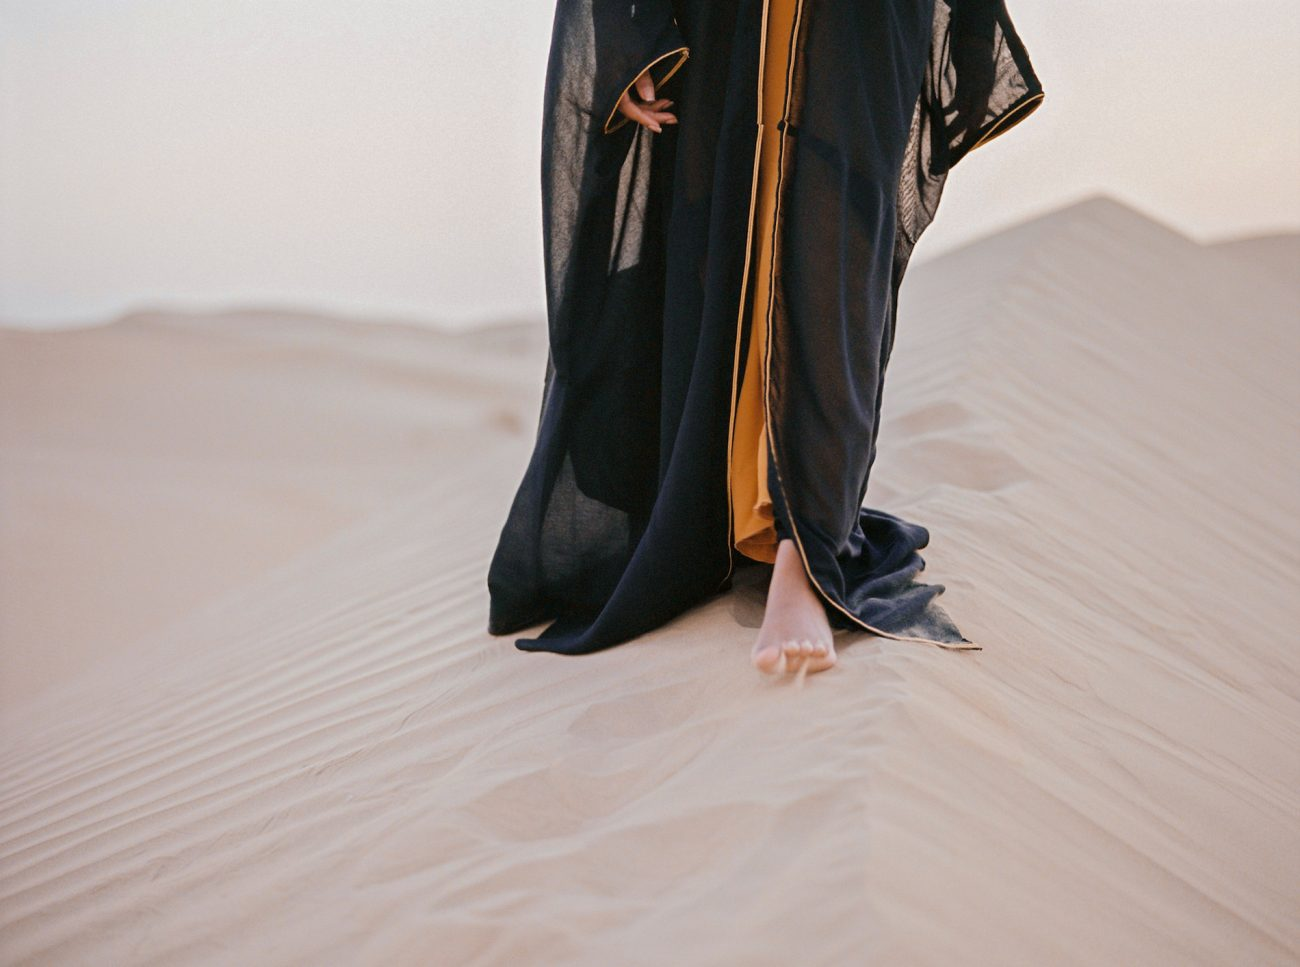 Desert fine art wedding inspiration black robe